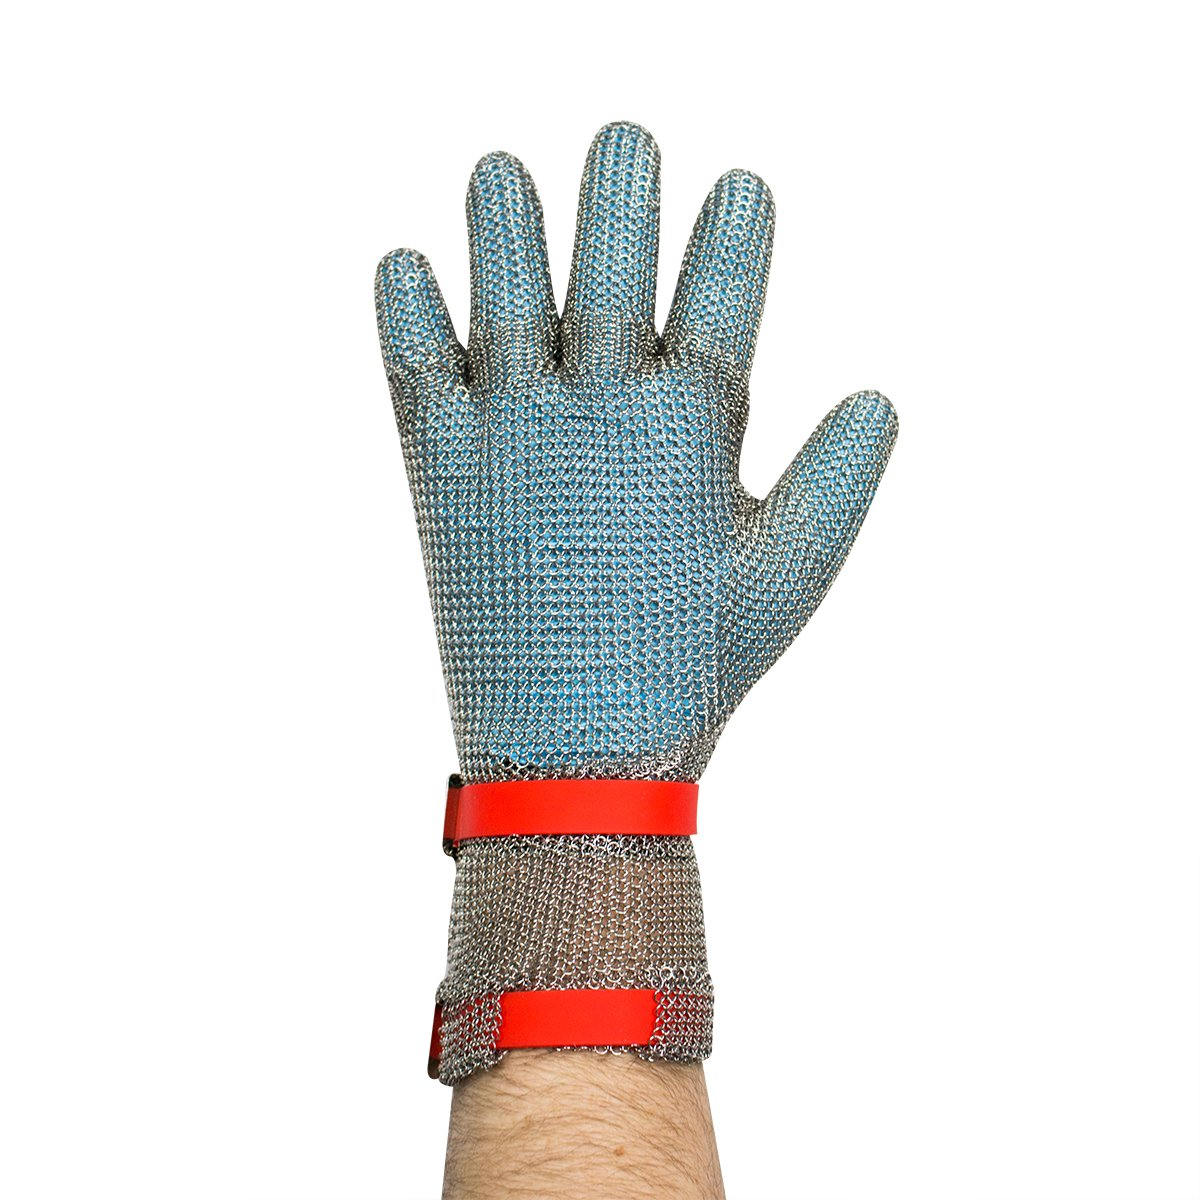 UltraSource Cut Resistant Stainless Steel Mesh Glove, Extended Cuff with Silicone Straps, Size Small (One Glove)